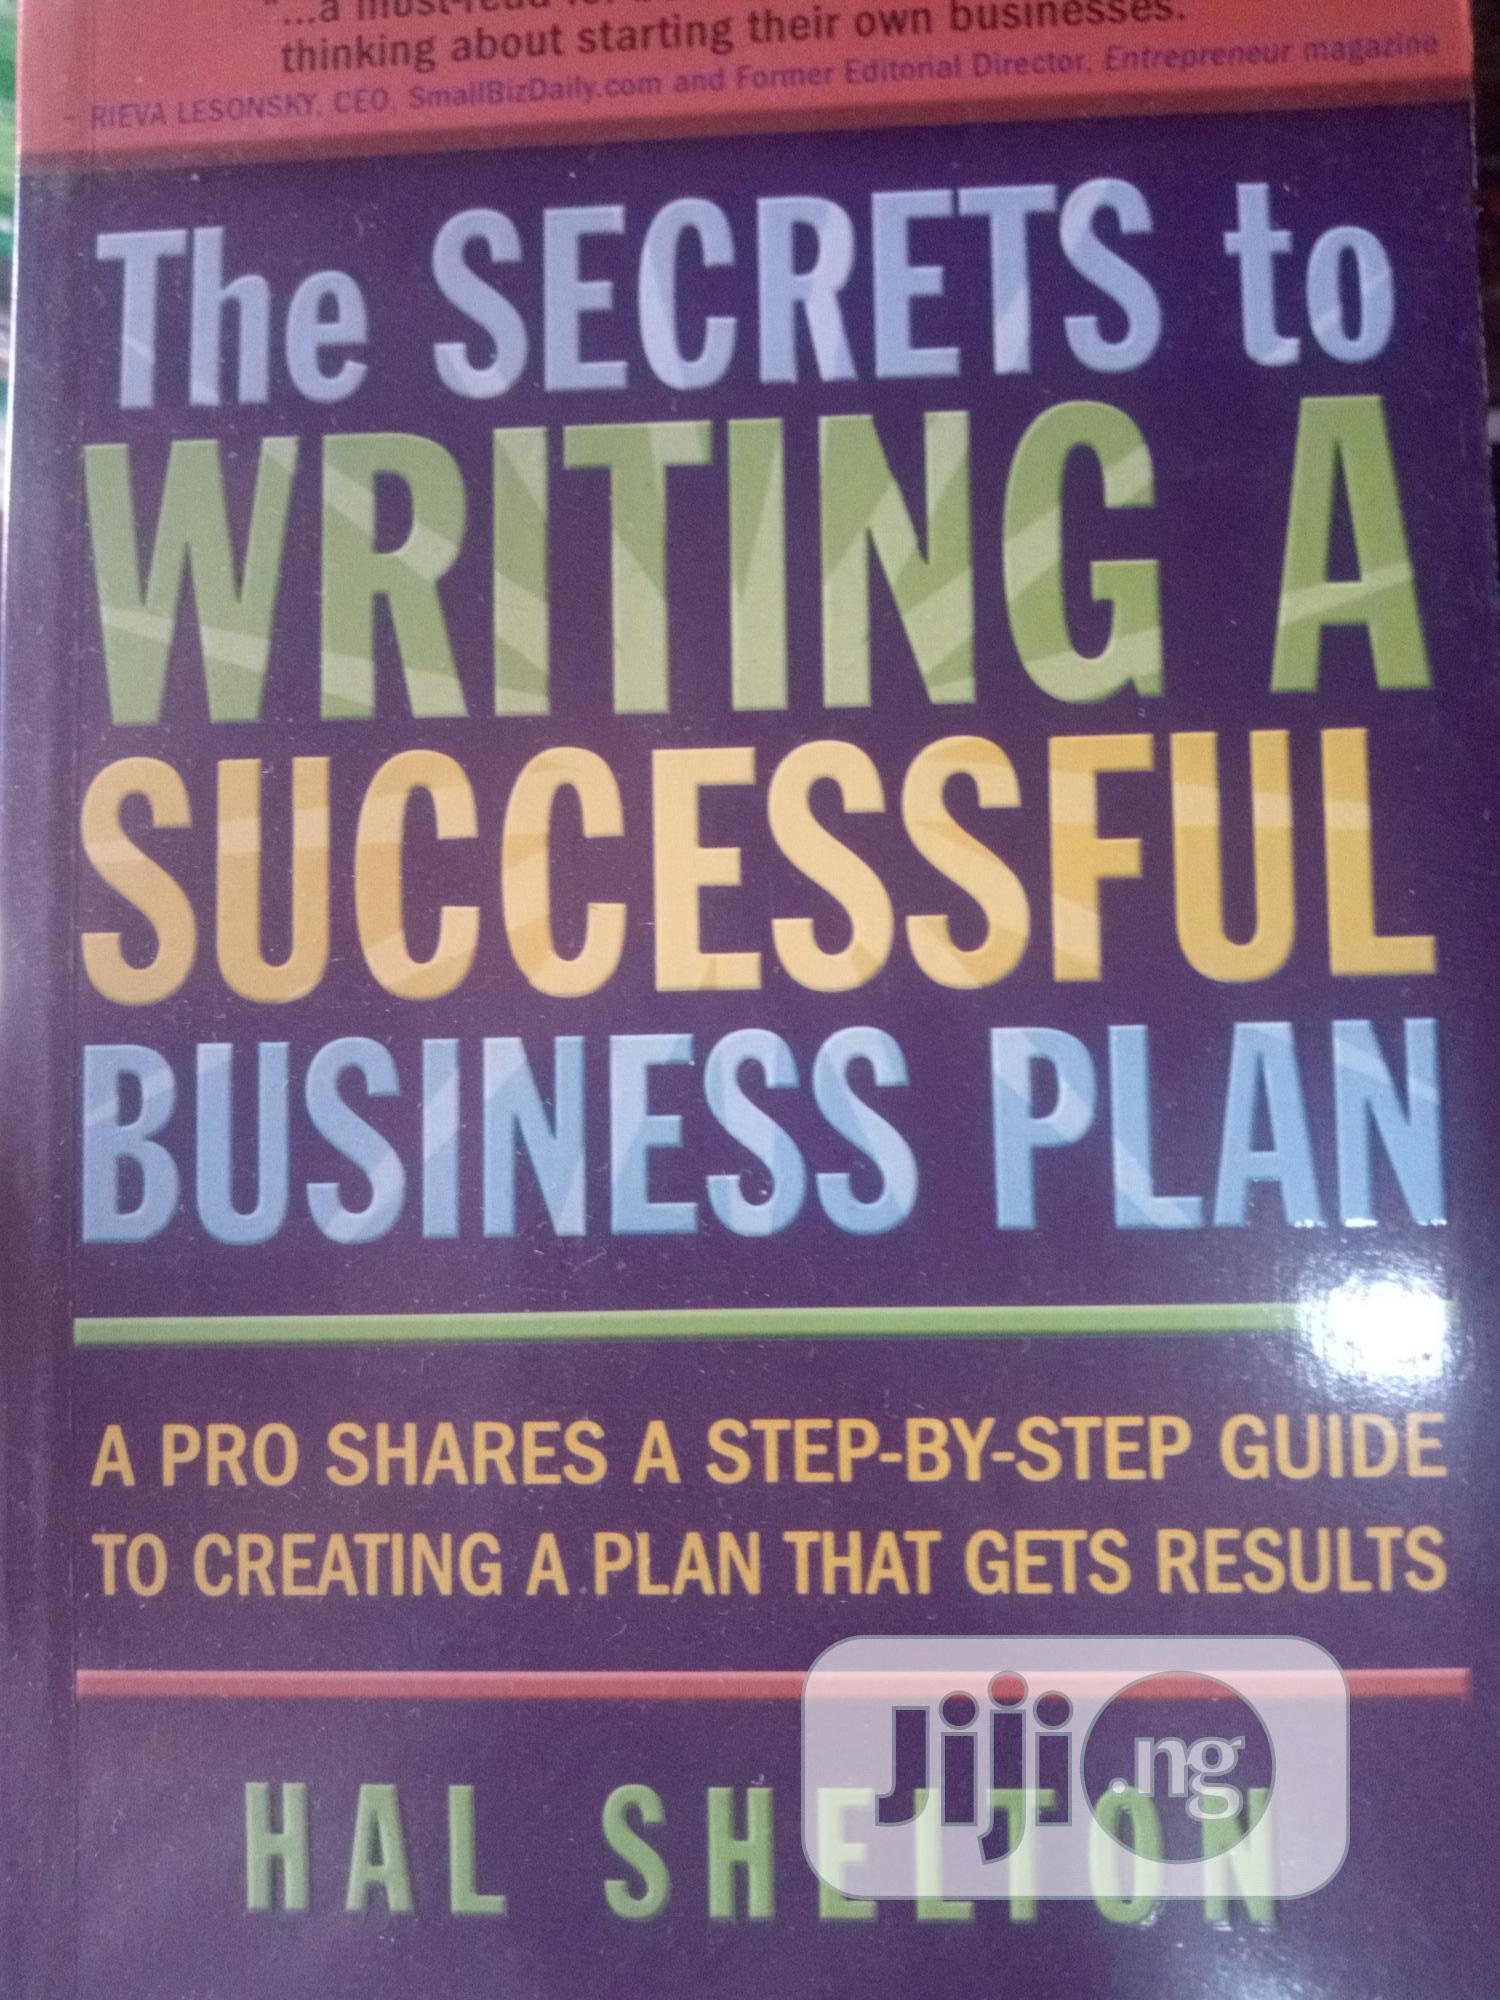 The Secret To Writing Successful Business Plan